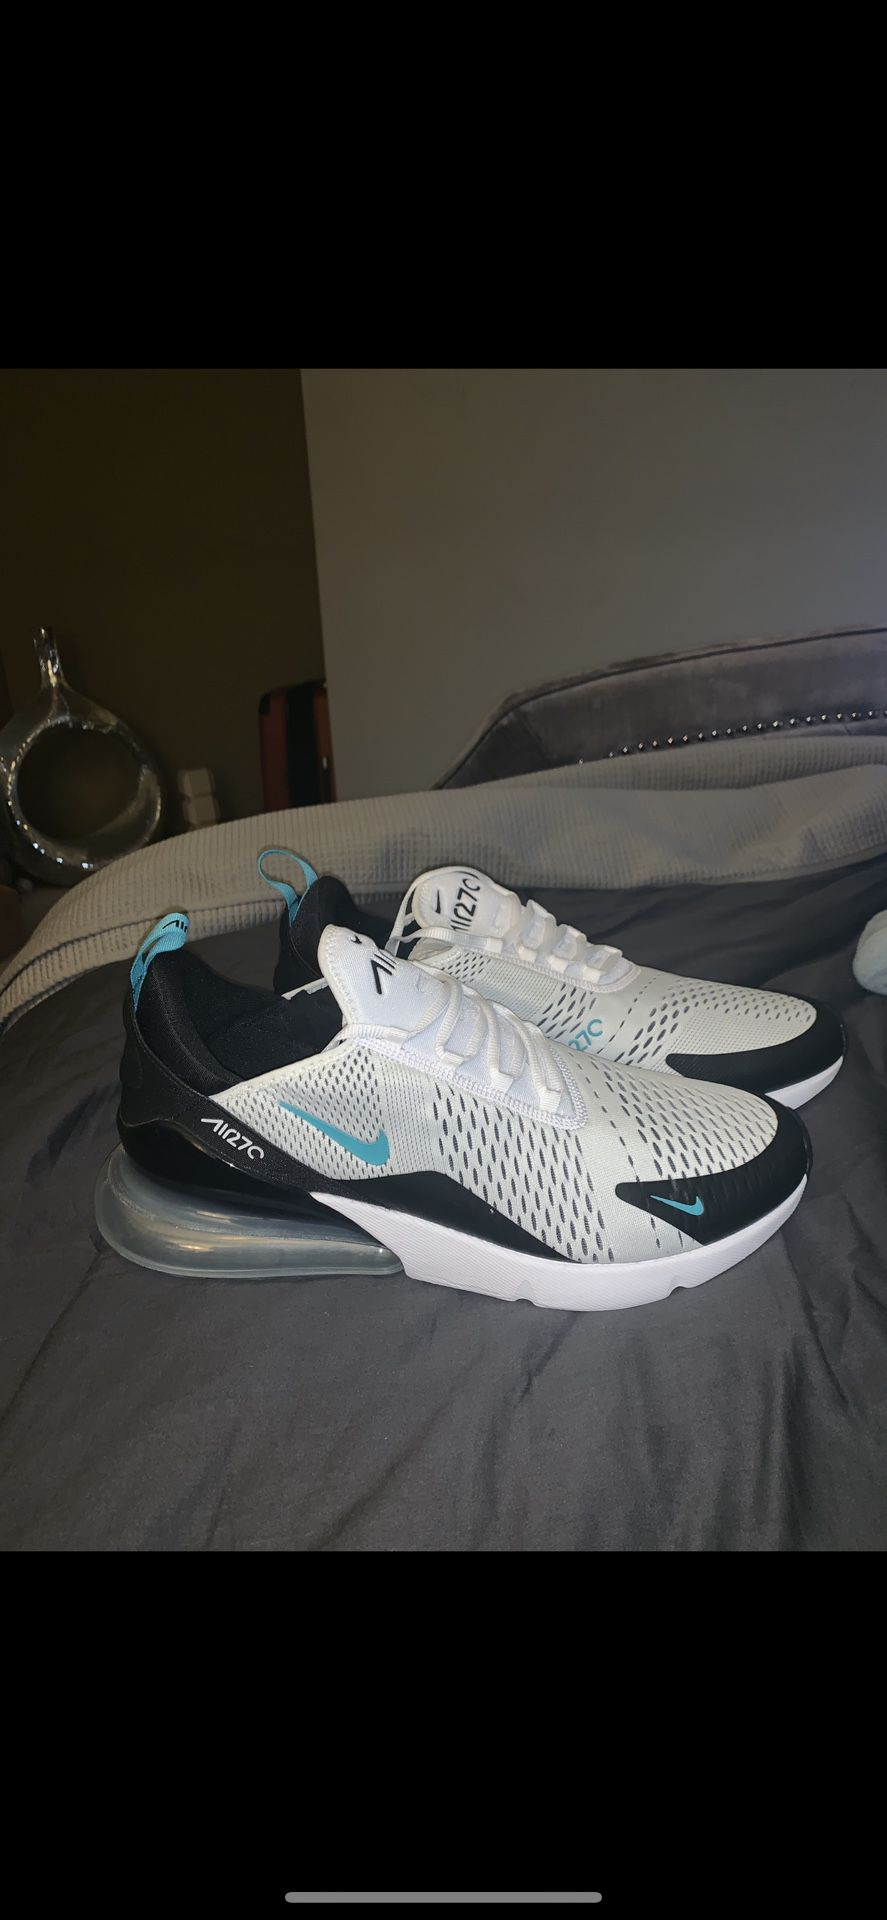 Multiple Nike and Jordan shoes all sizes 14 and 15